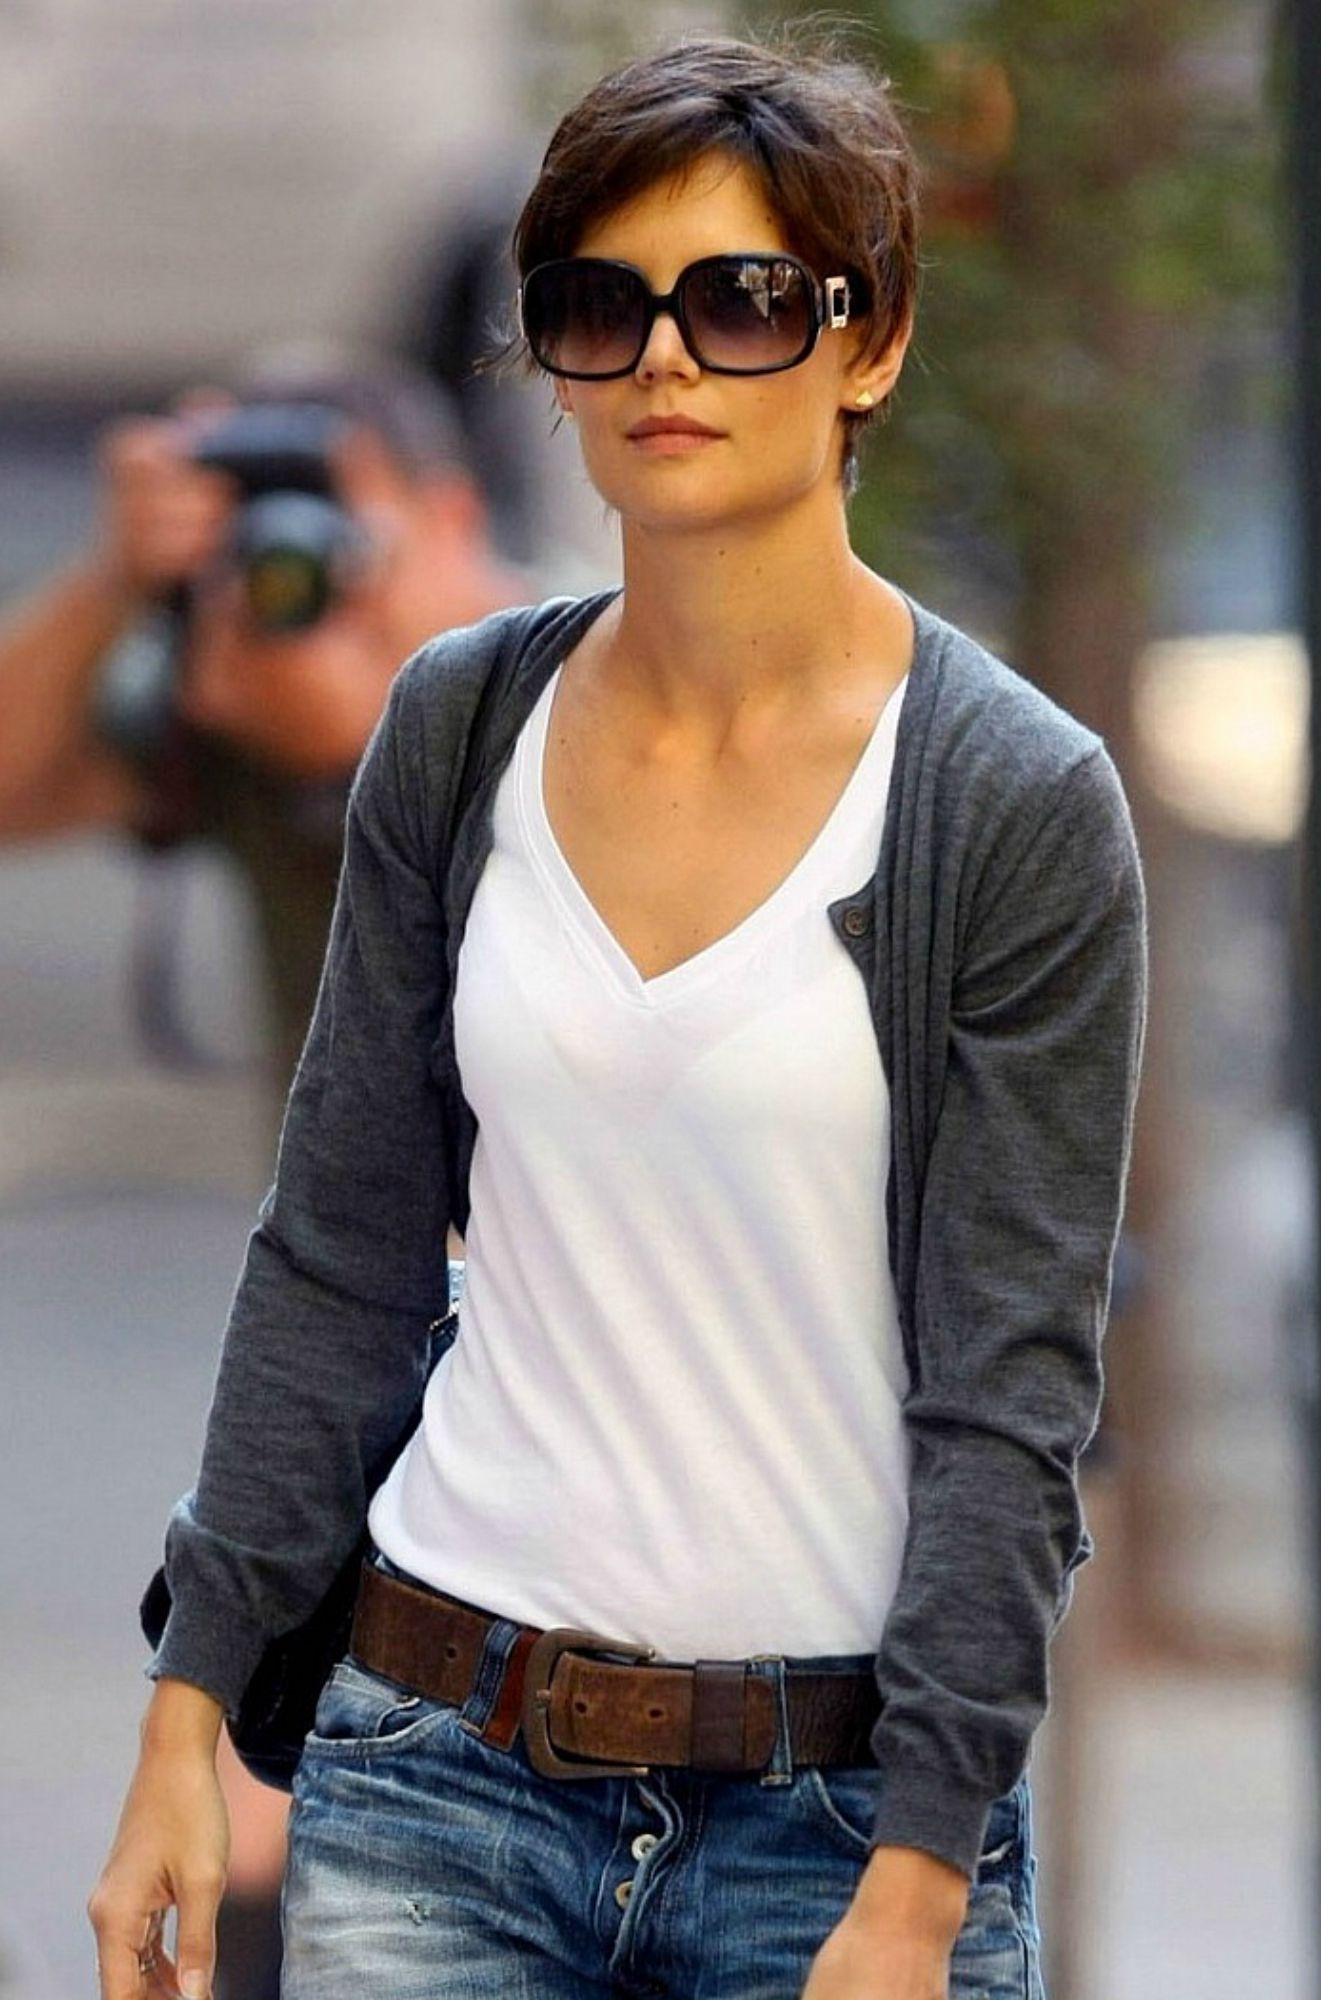 Katie Holmes Outfits 50 Best Outfits Short Hair Outfits Hair Inspiration Short Katie Holmes Haircut